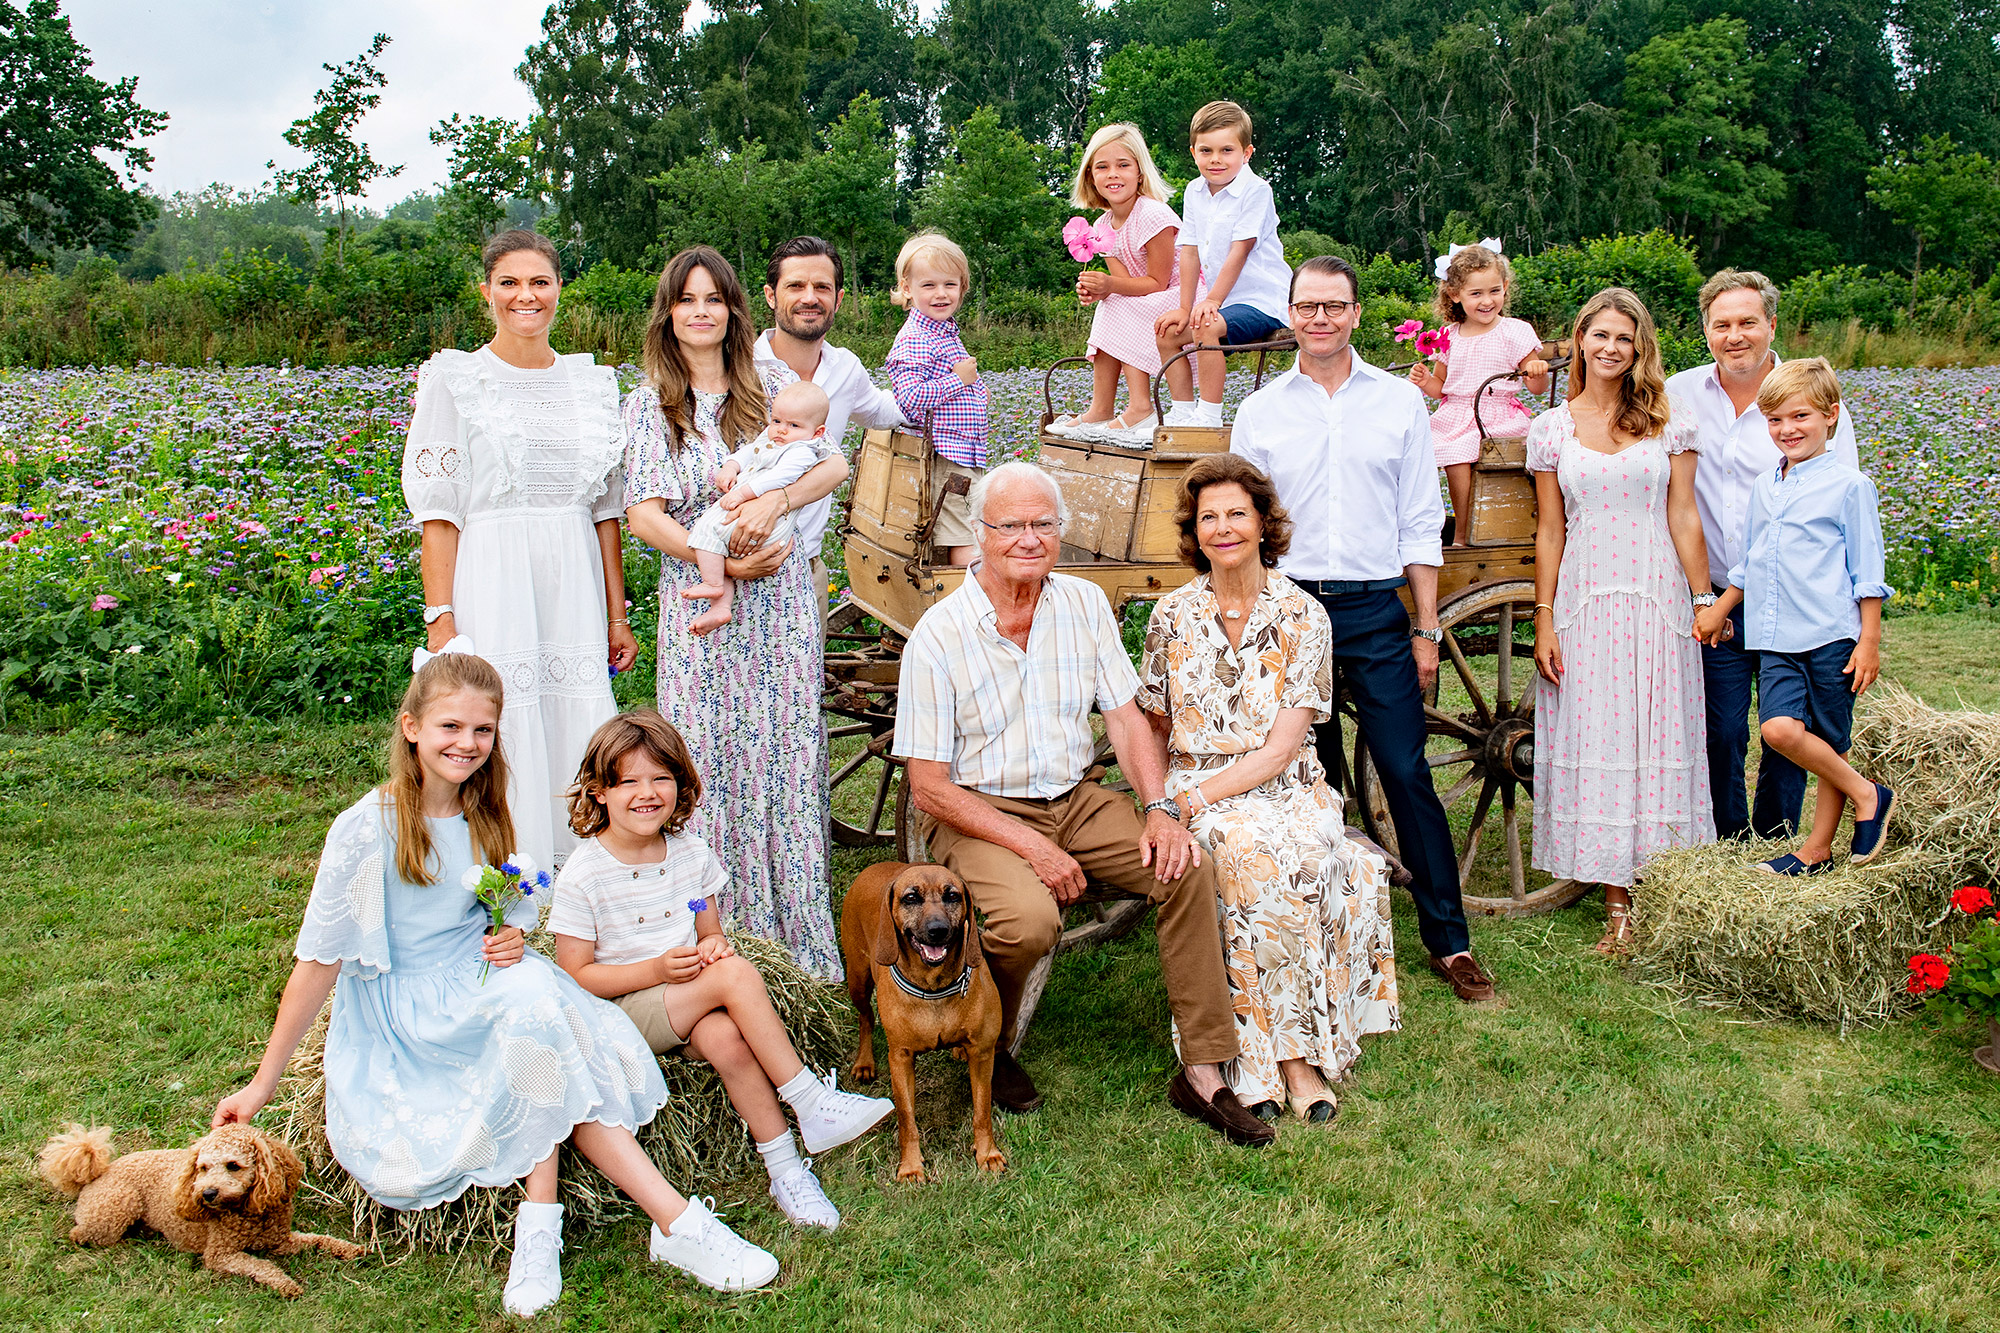 The Swedish royal family photographed at Solliden on Öland in July 2021.